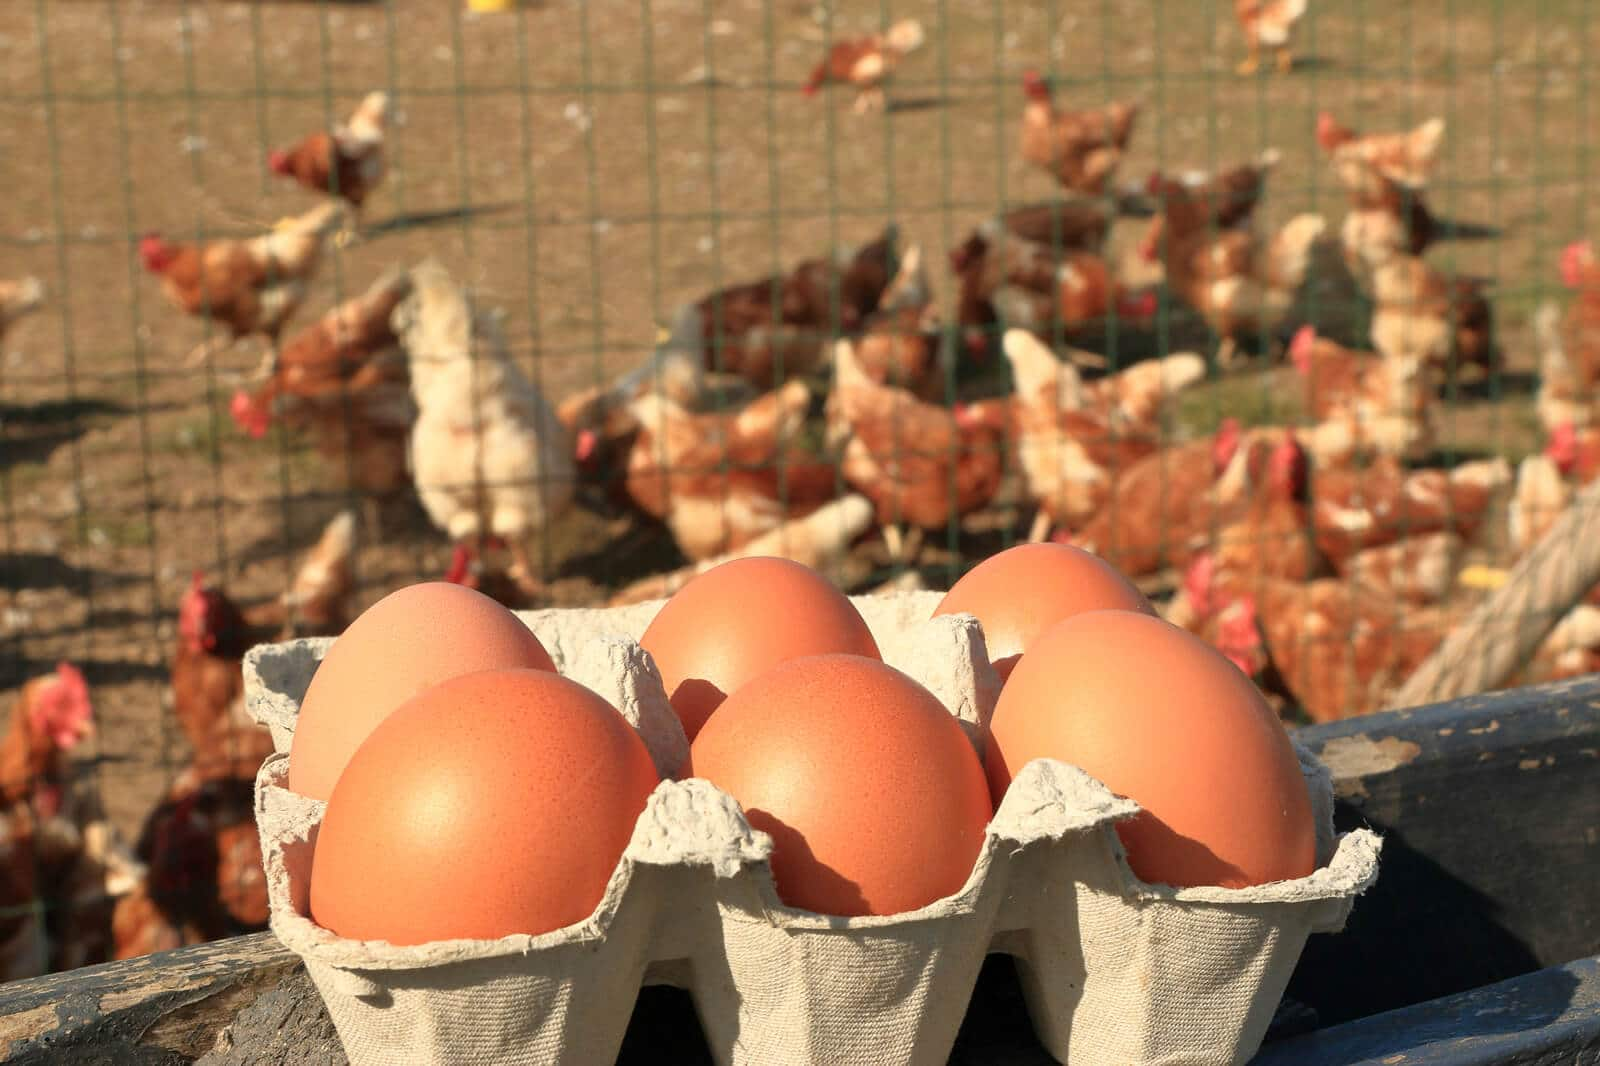 brown eggs in a carton with chickens in the background